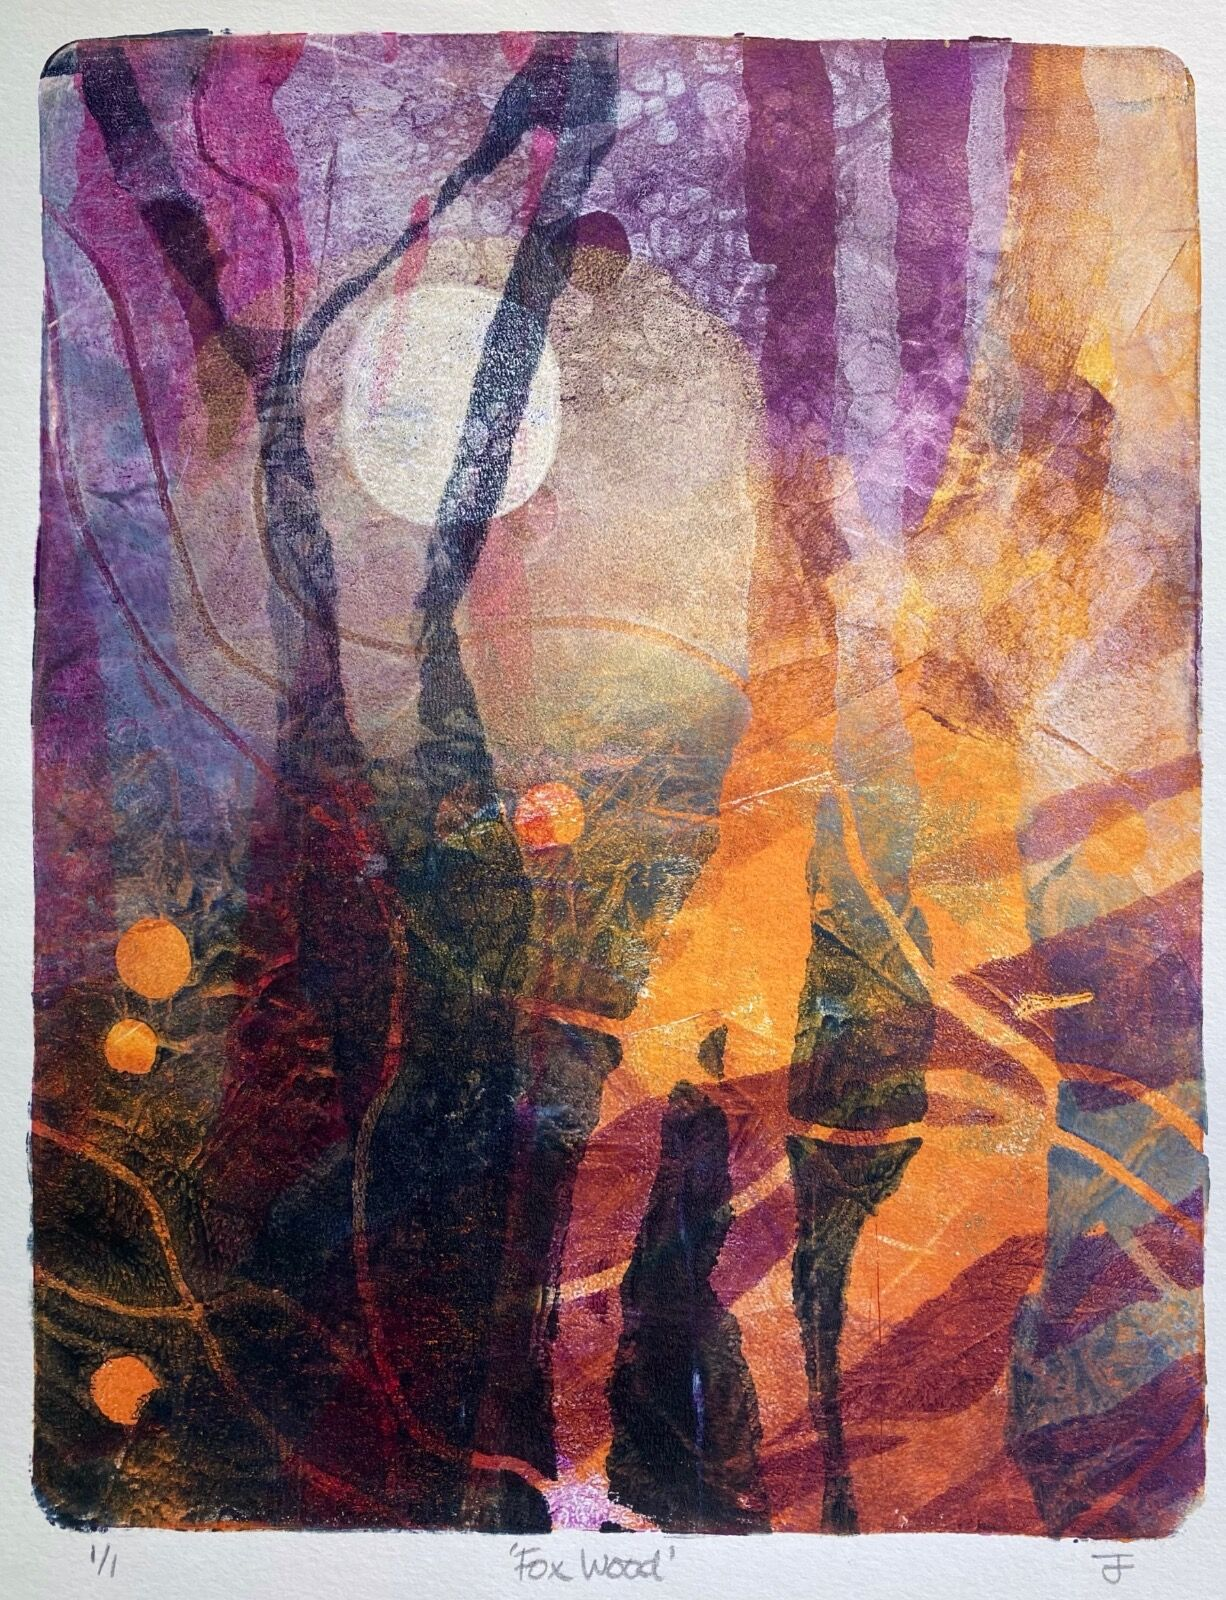 Monotype print of a mysterious purple and gold woodland at night with a moon shining through the trees